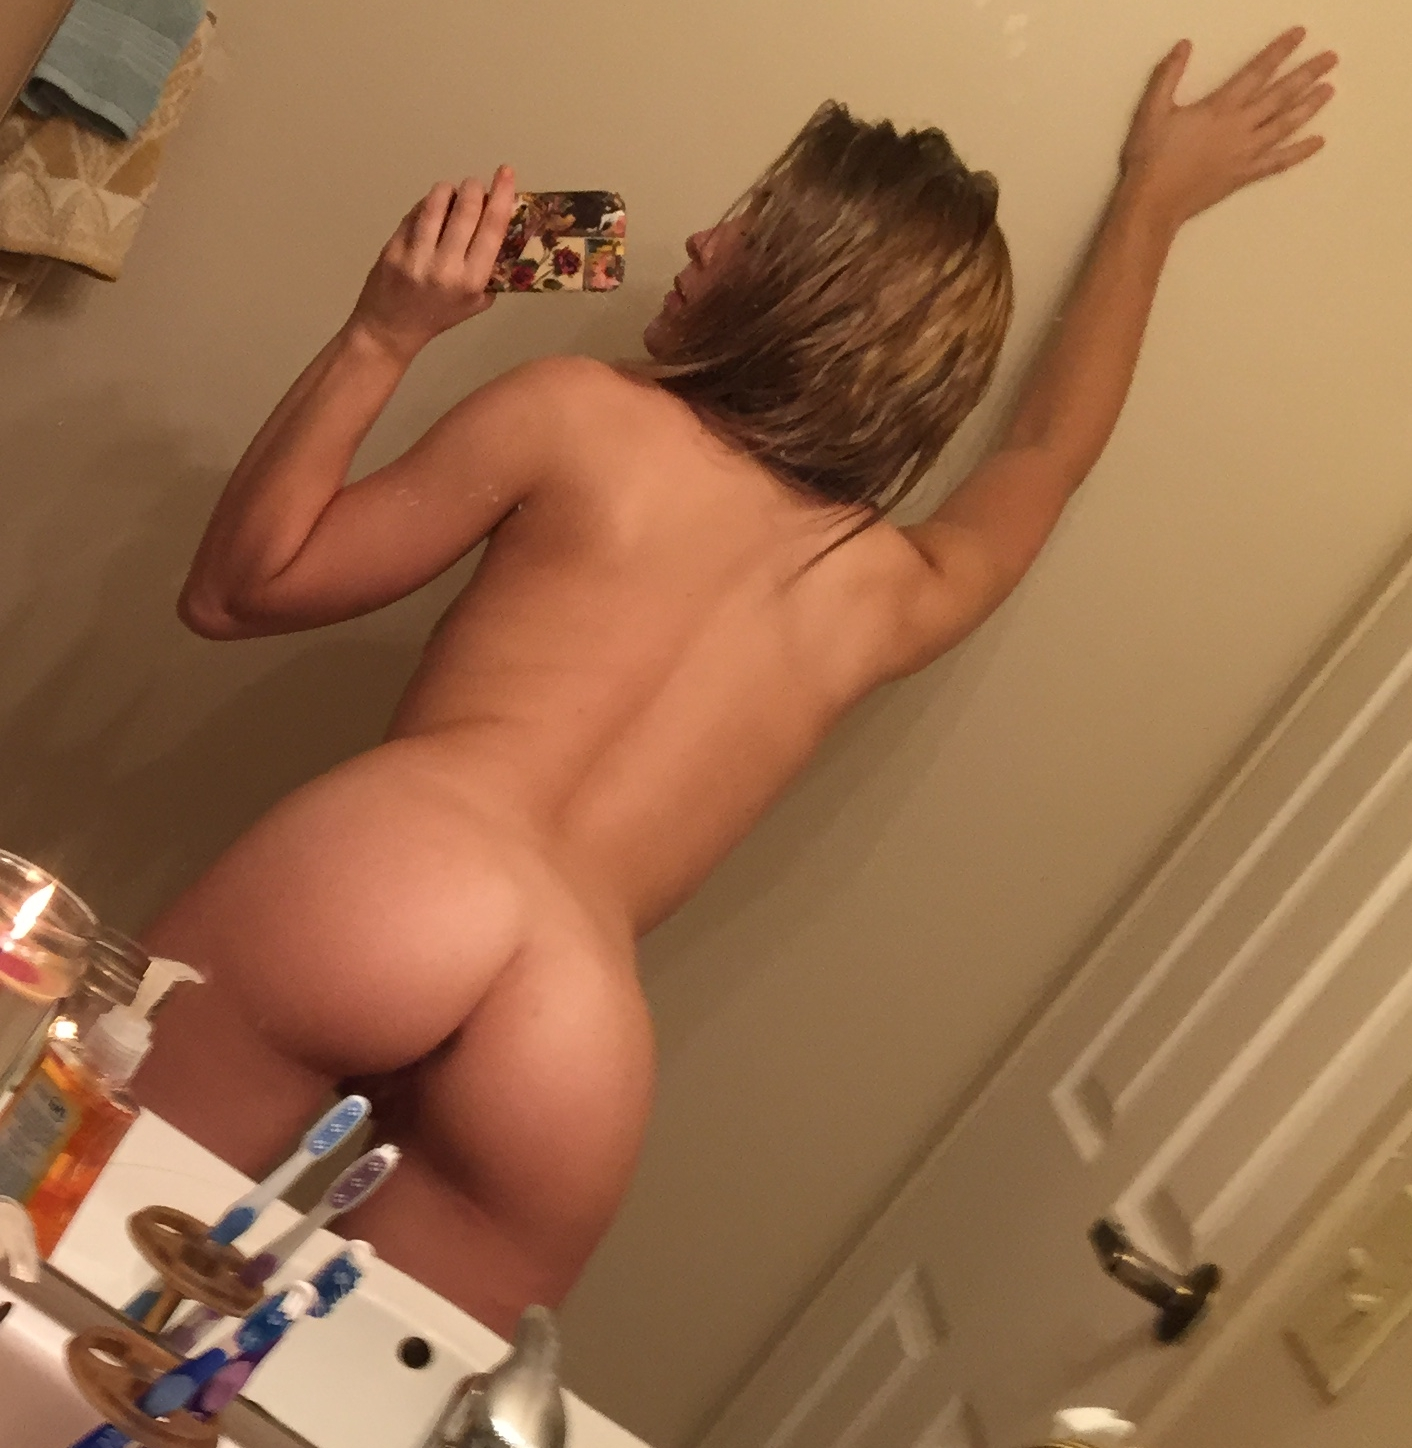 Nude Teen Images